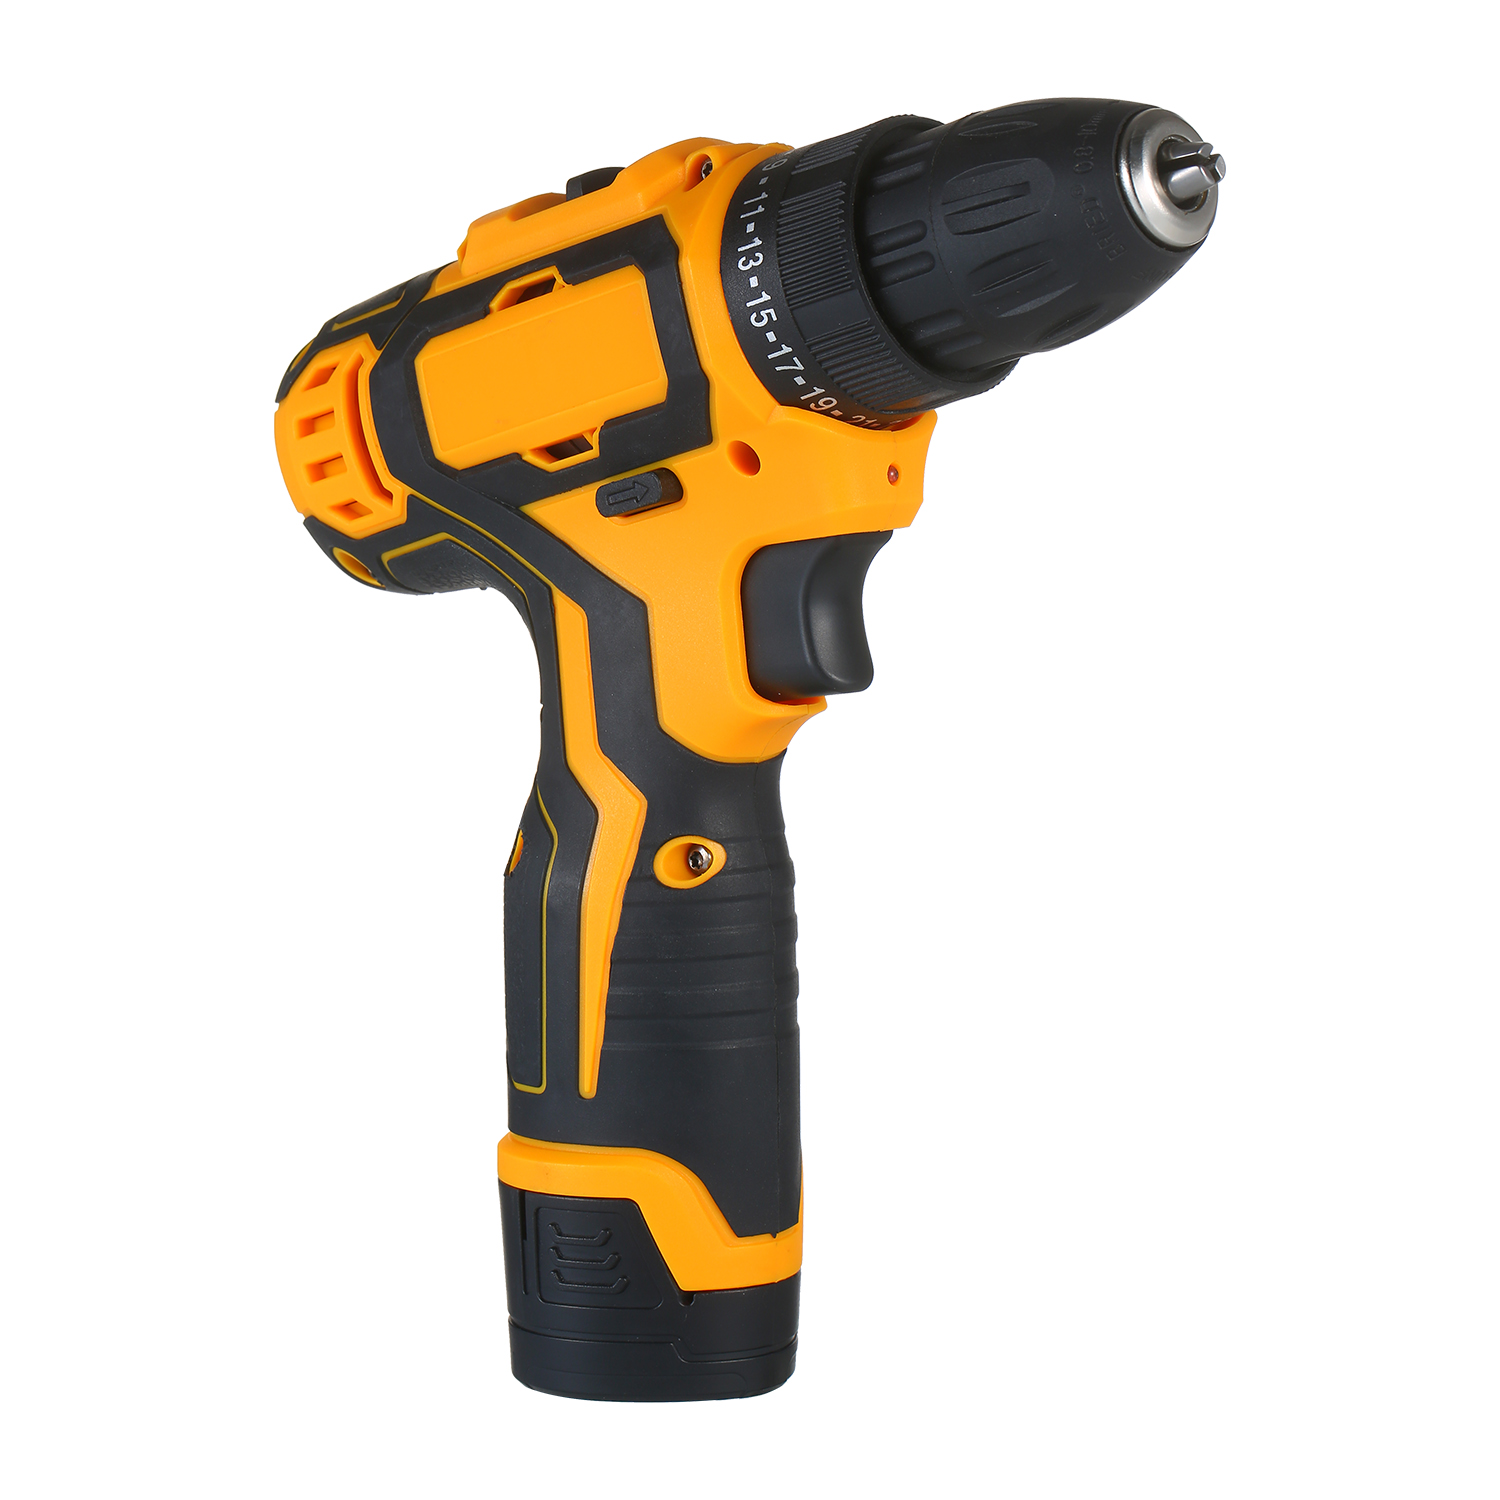 Cordless Drill Driver 18V 25+1 Torque Setting Compact Drill with 6A Li-ion Battery Fast Charger Cordless electric screwdriver